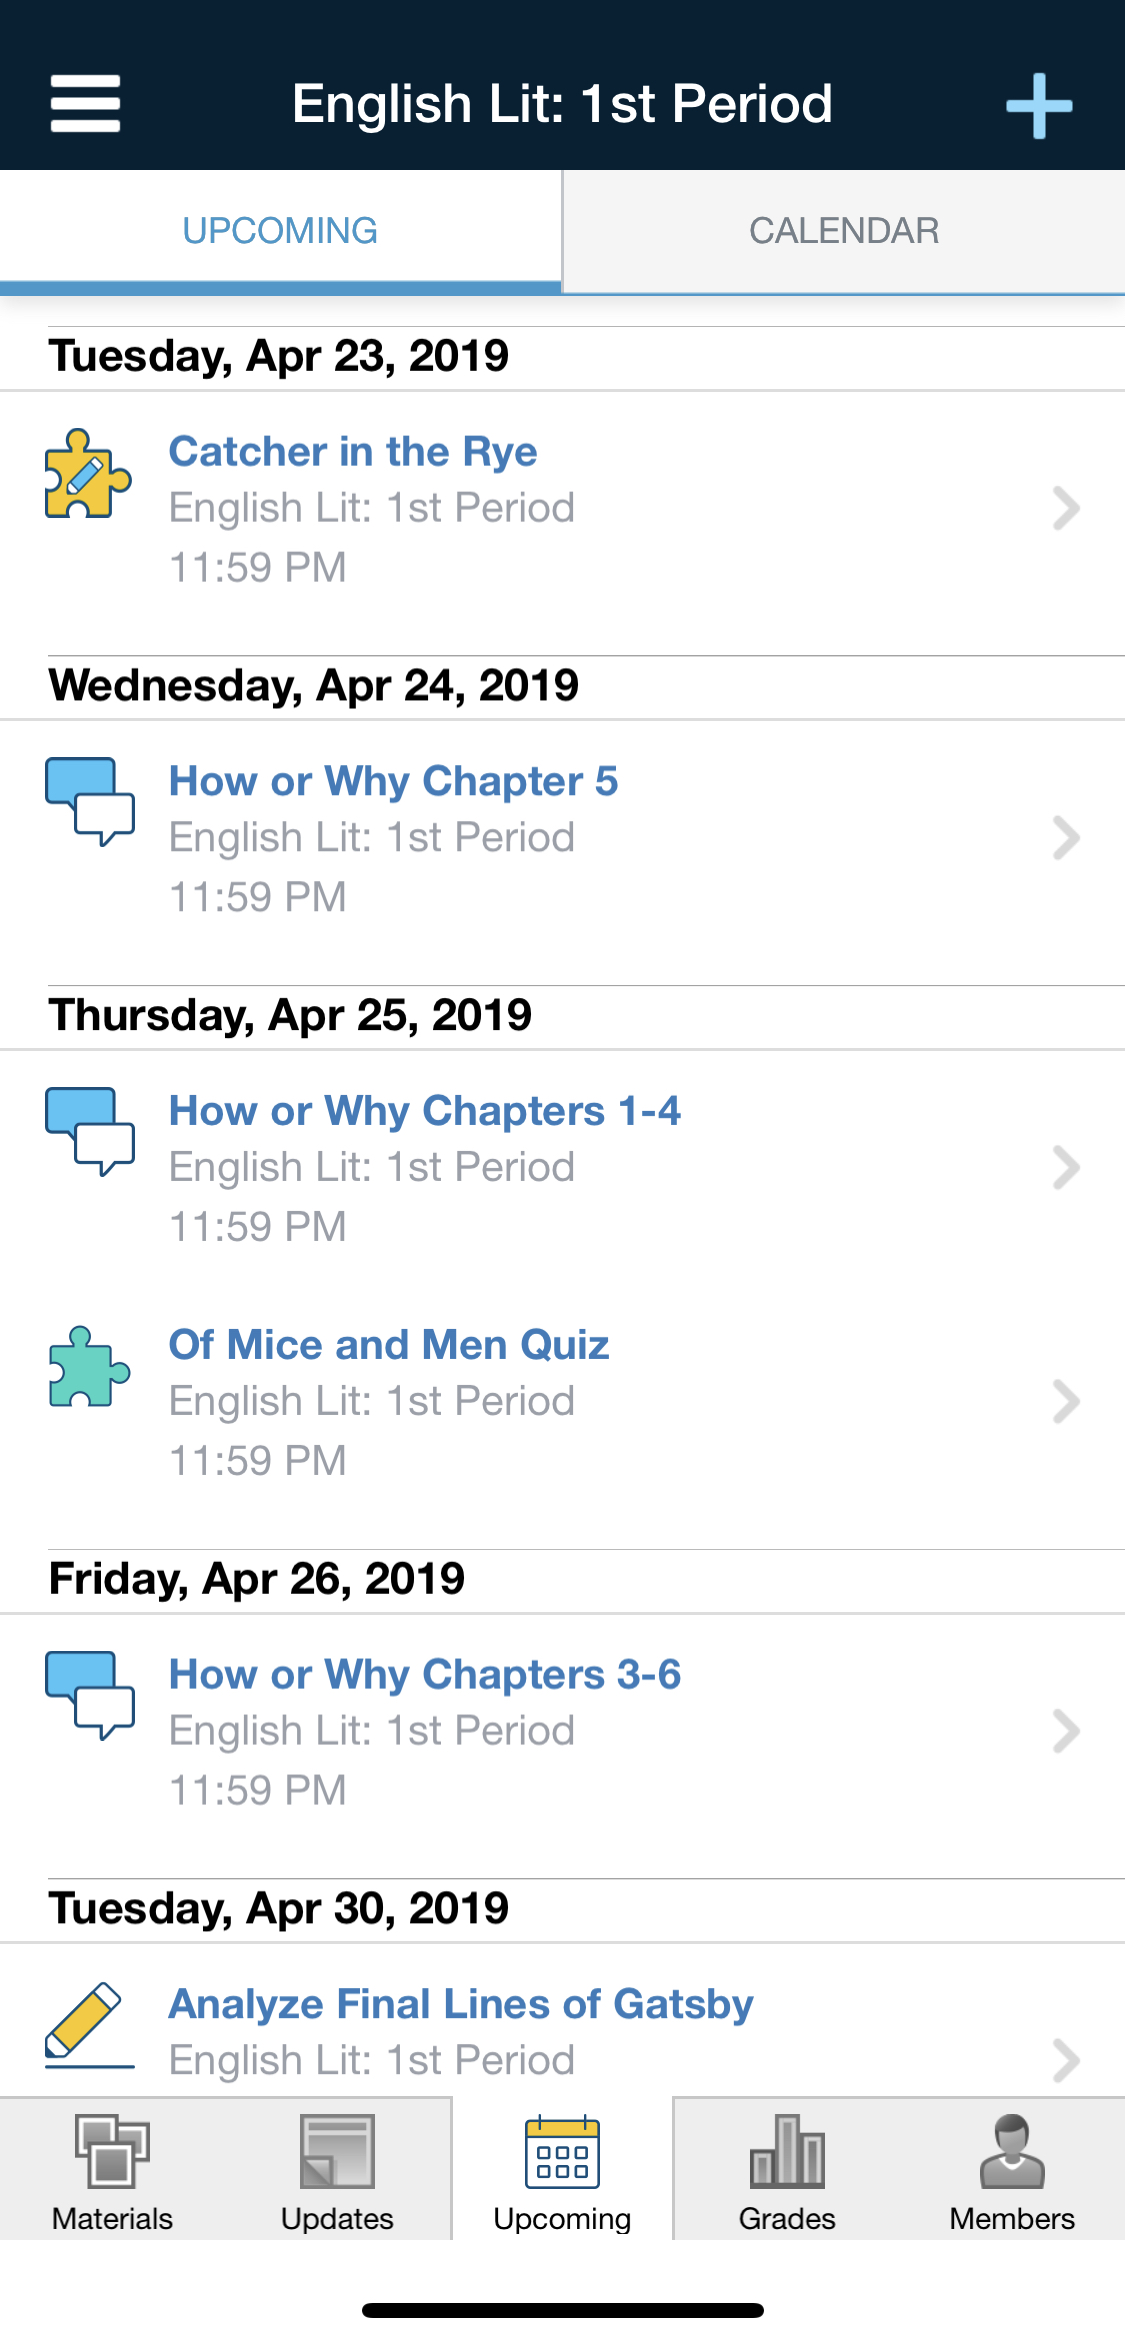 13_iPhoneX_6.7.0_Course_Upcoming_Student.jpg